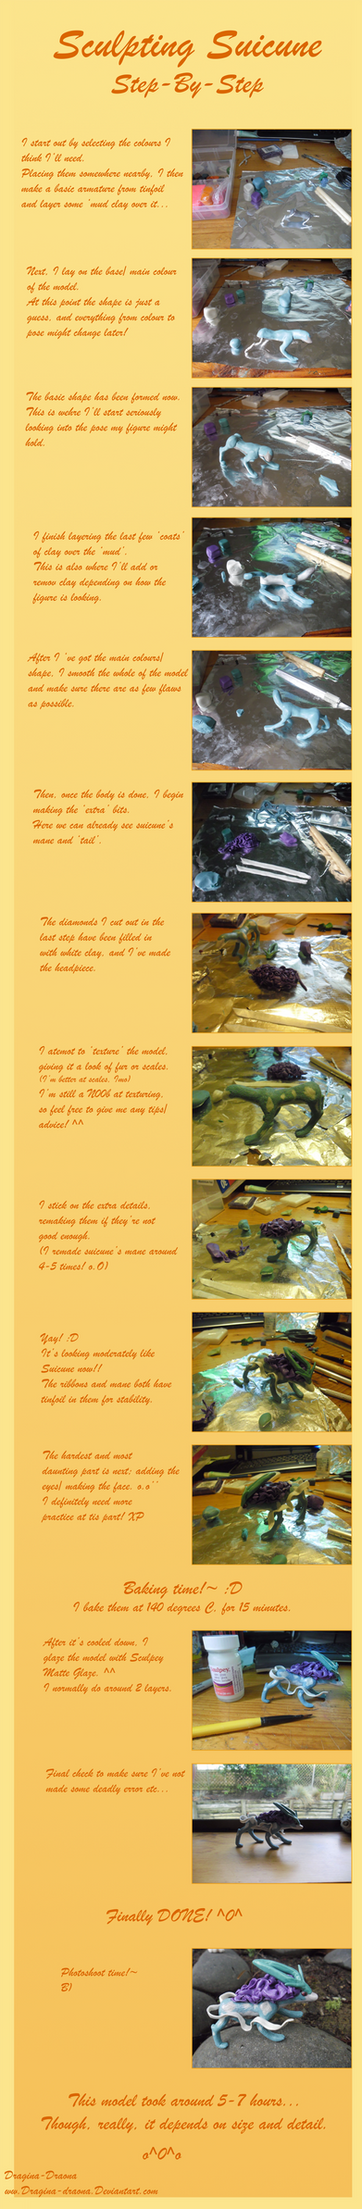 How I Sculpted Suicune - Step by Step by Dragina-Draona